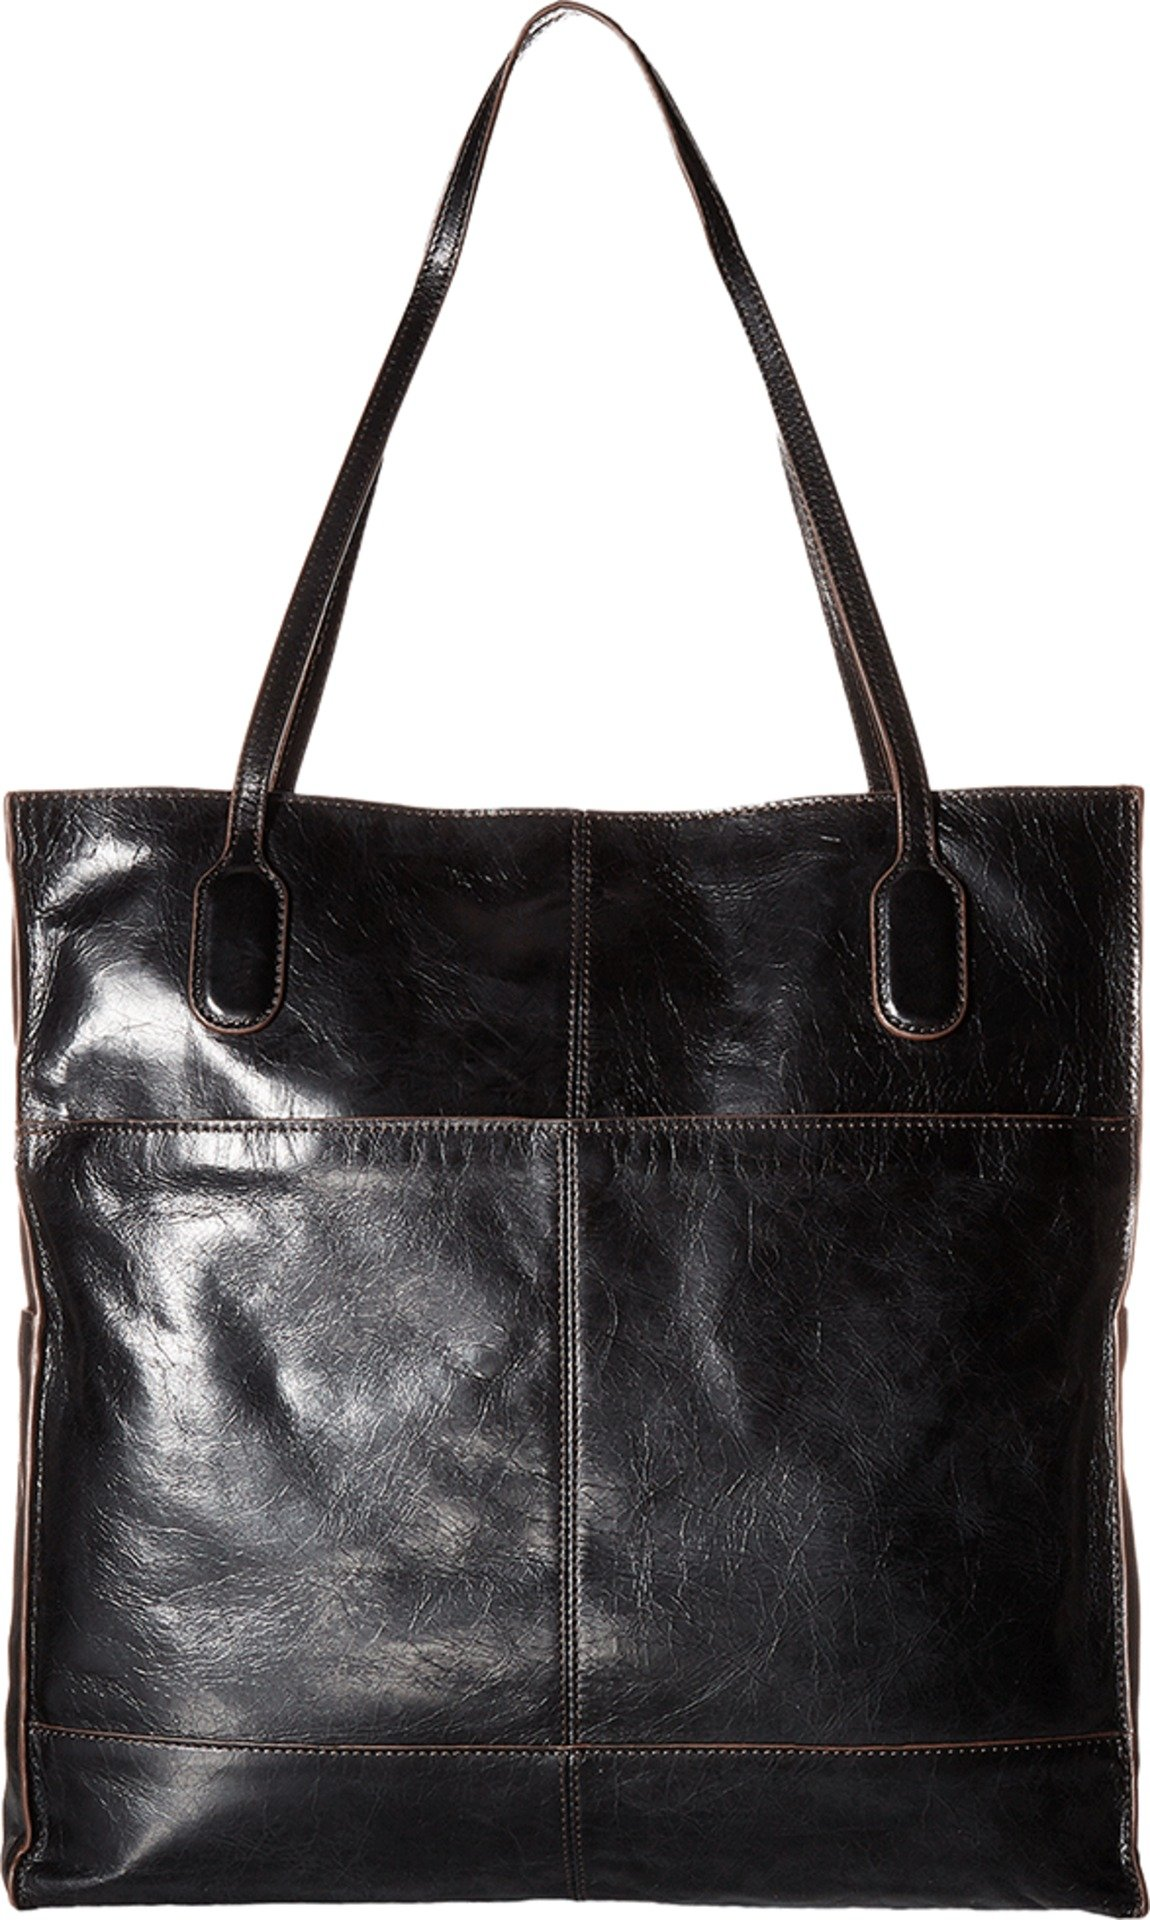 HOBO Vintage Finley Tote Handbag,Black,One Size by HOBO (Image #1)